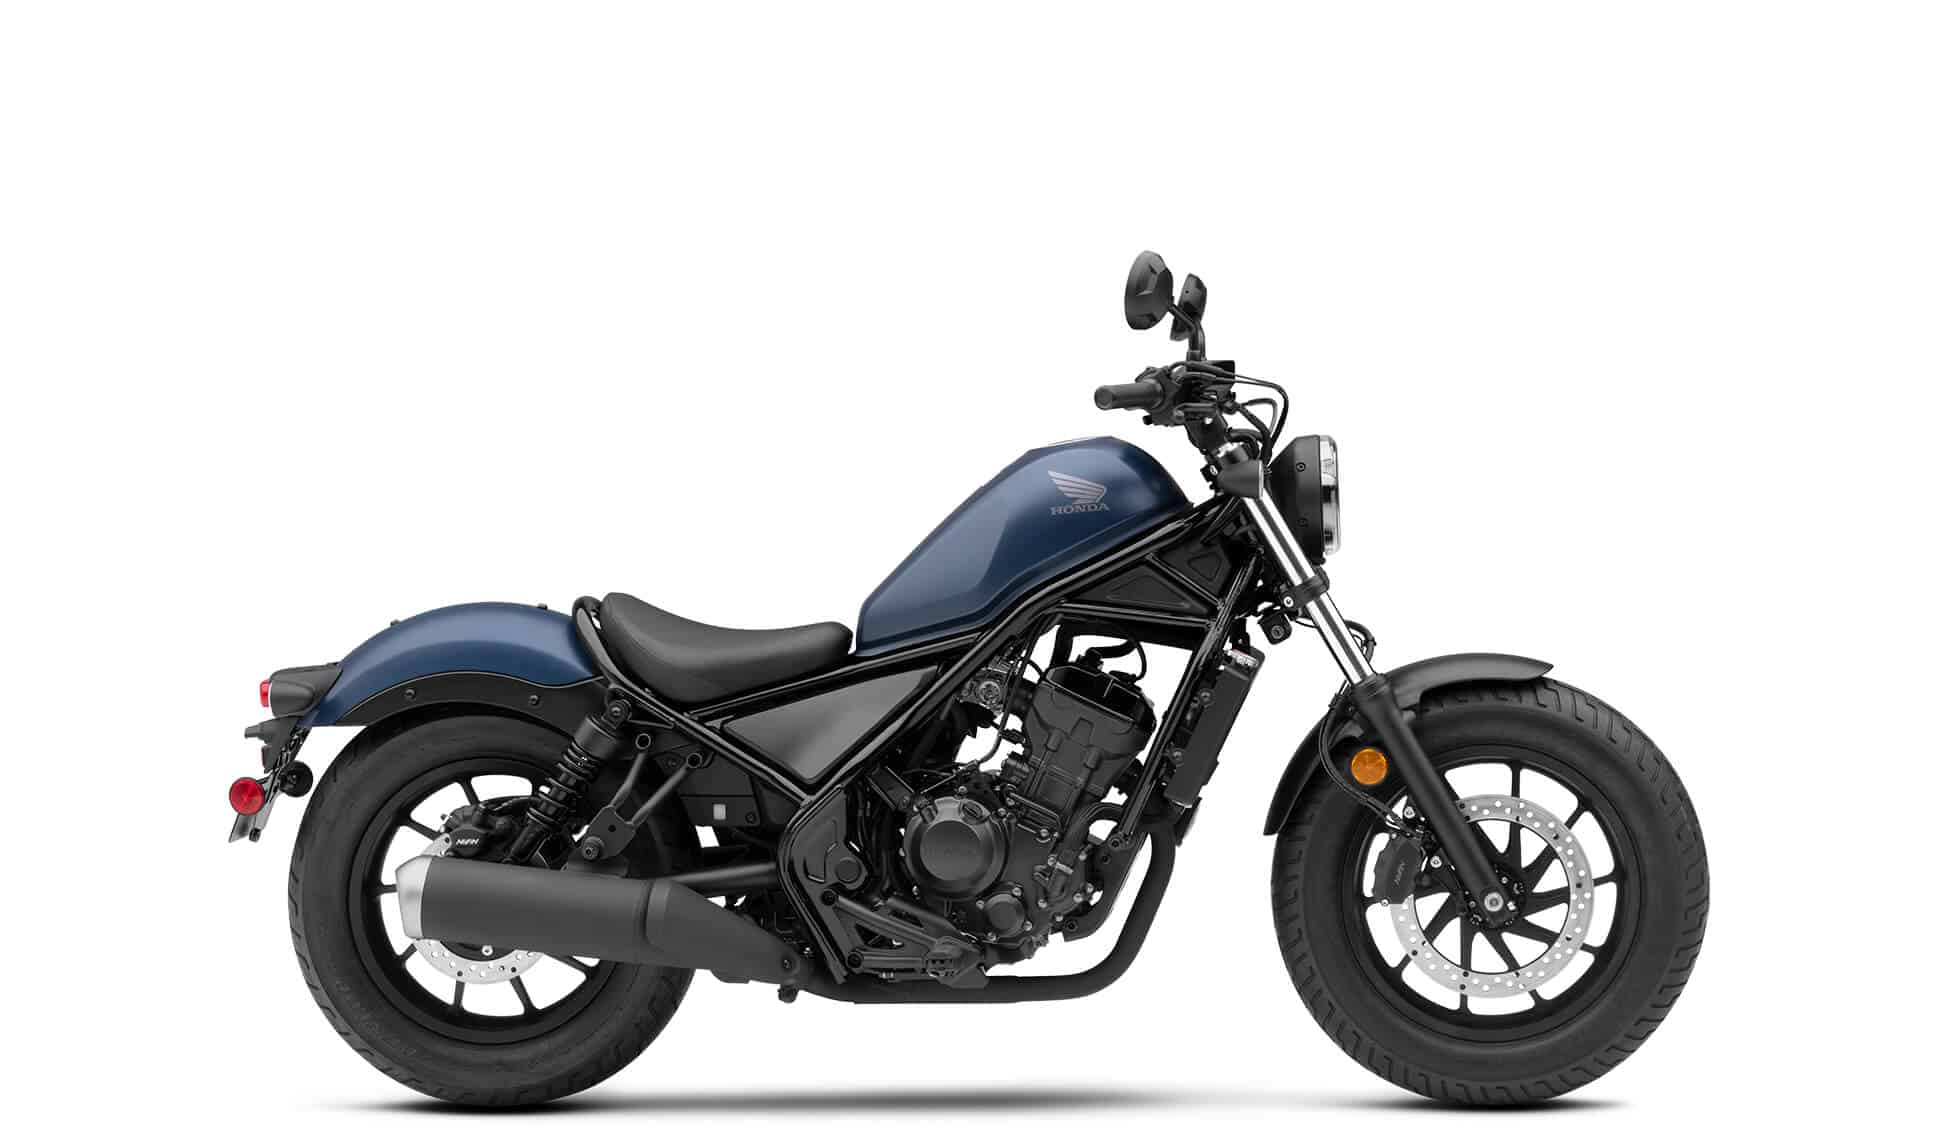 2020-honda-rebel-300-side-profile